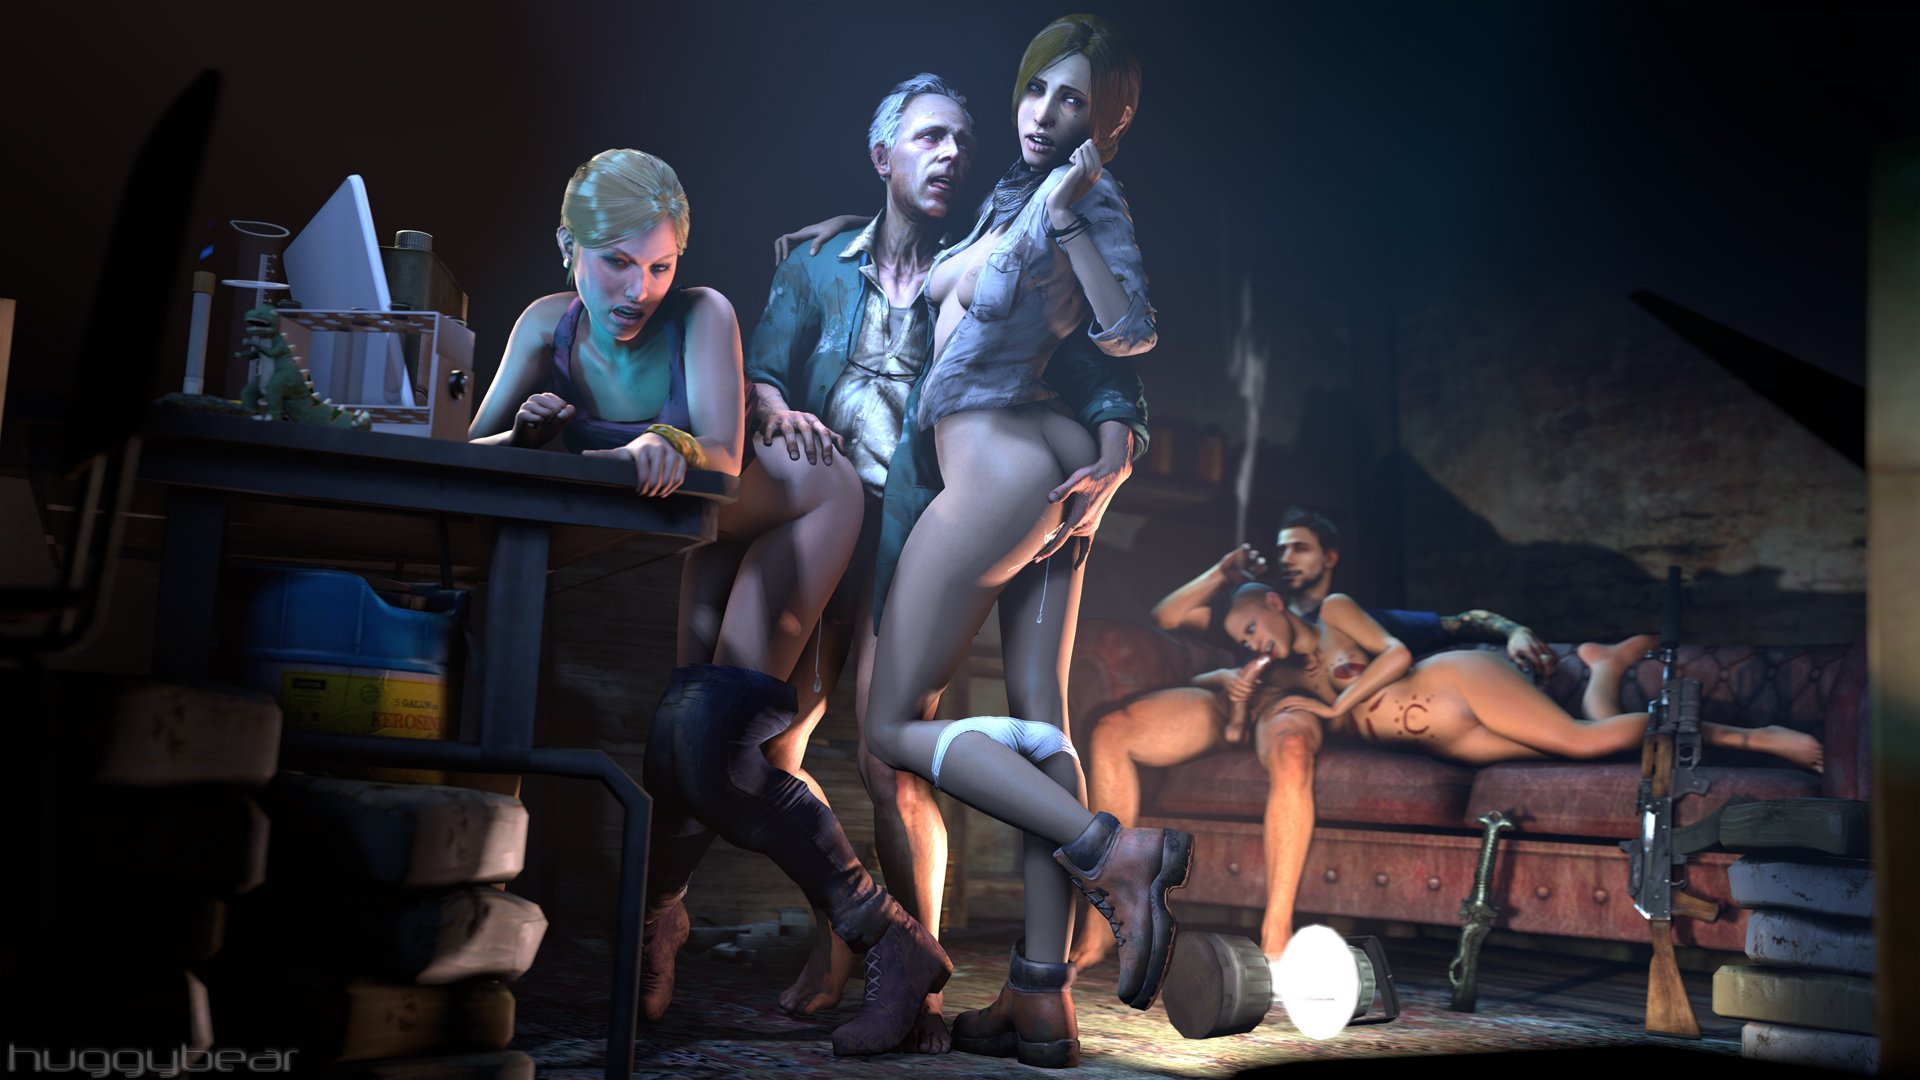 Far cry nude exploited images